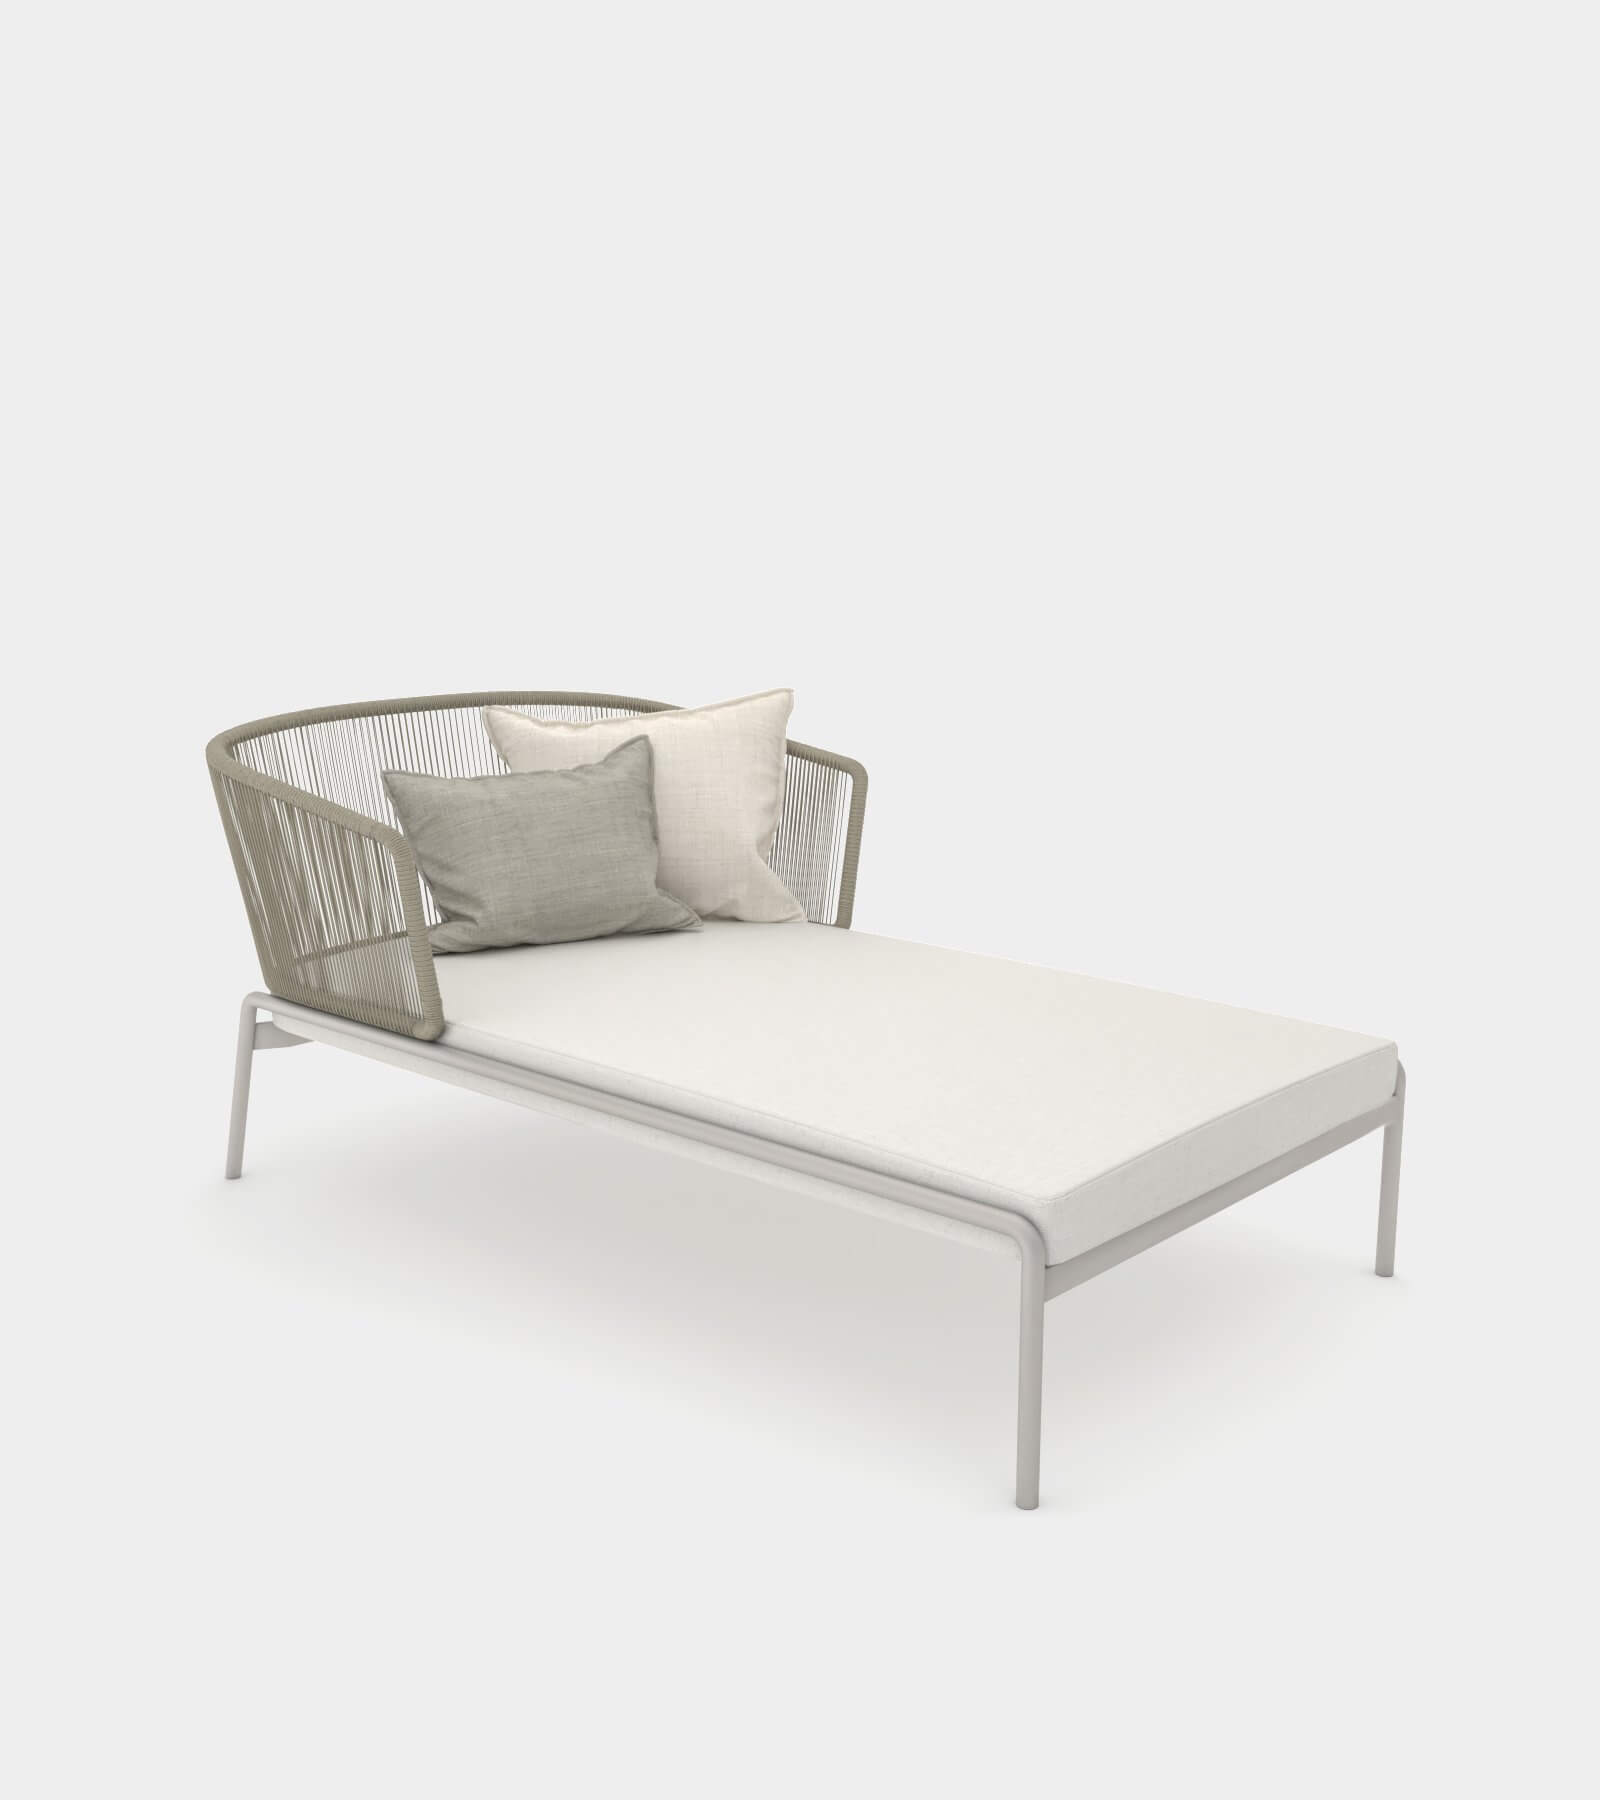 Outdoor pool chaise lounge - 3D Model